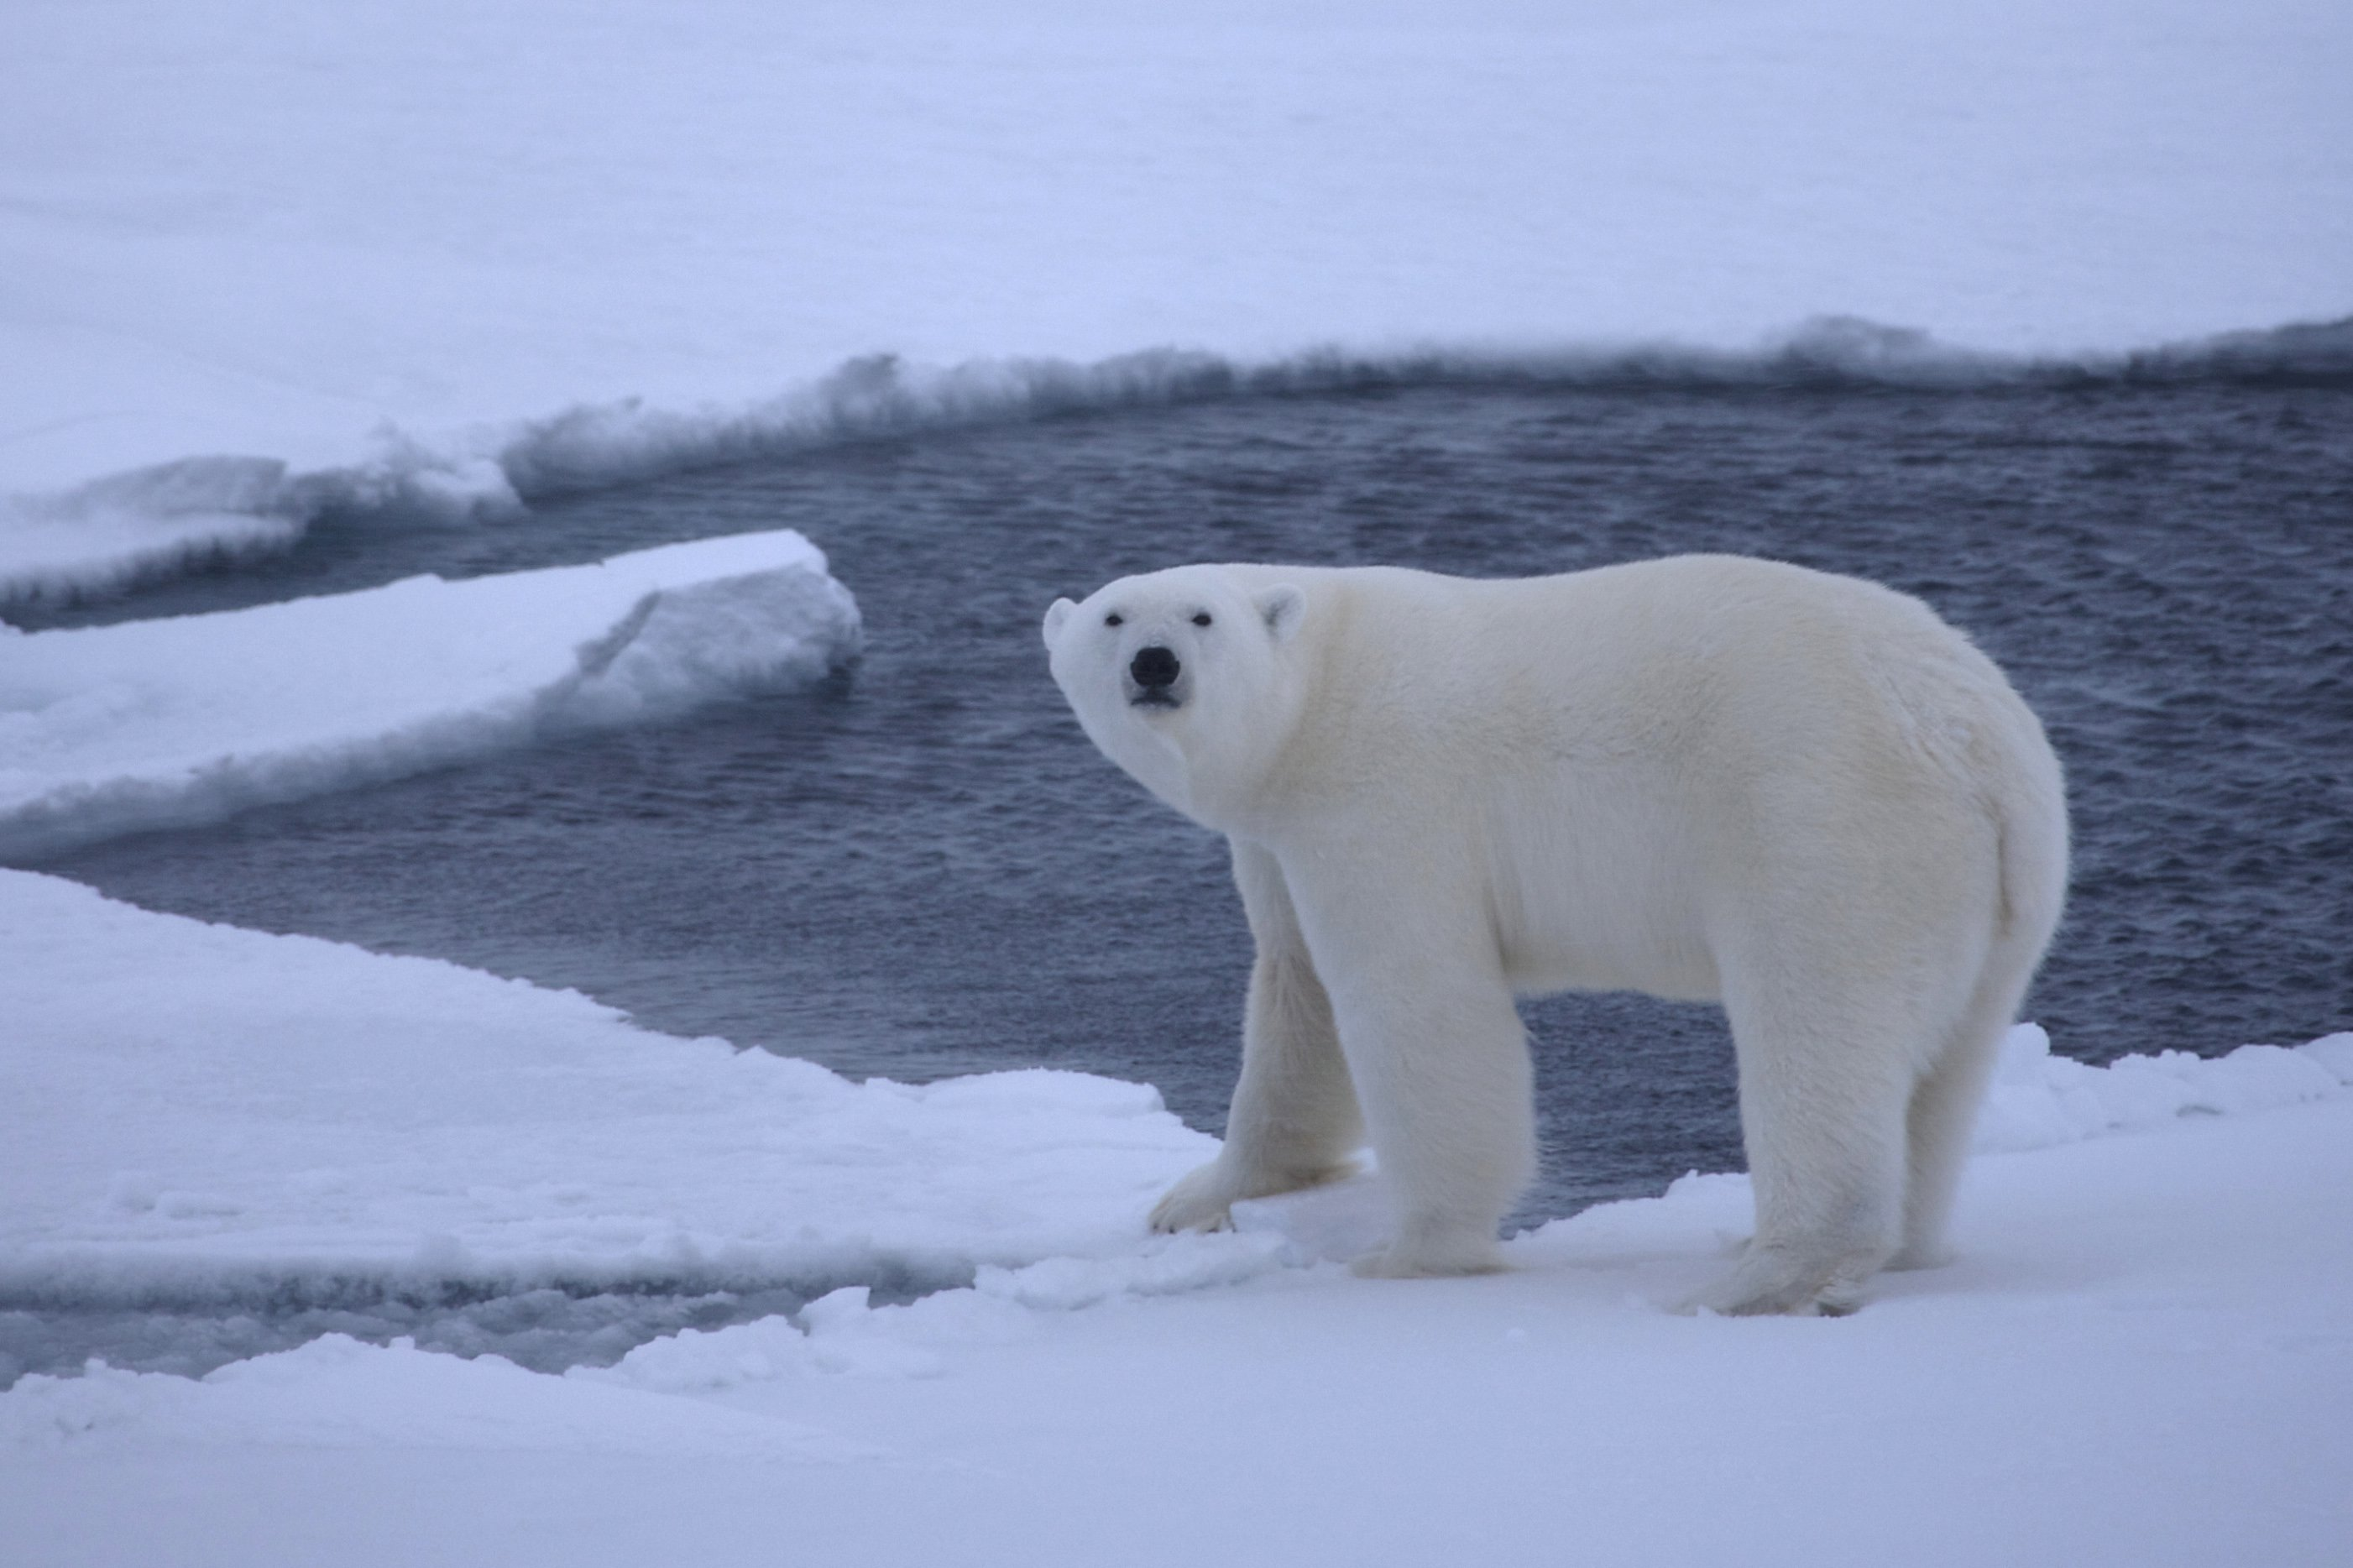 A young polar bear on pack ice over deep waters in the Arctic Ocean, is shown in this October 2009 handout photo provided by the University of Wyoming. Photo: University of Wyoming/Handout via Reuters